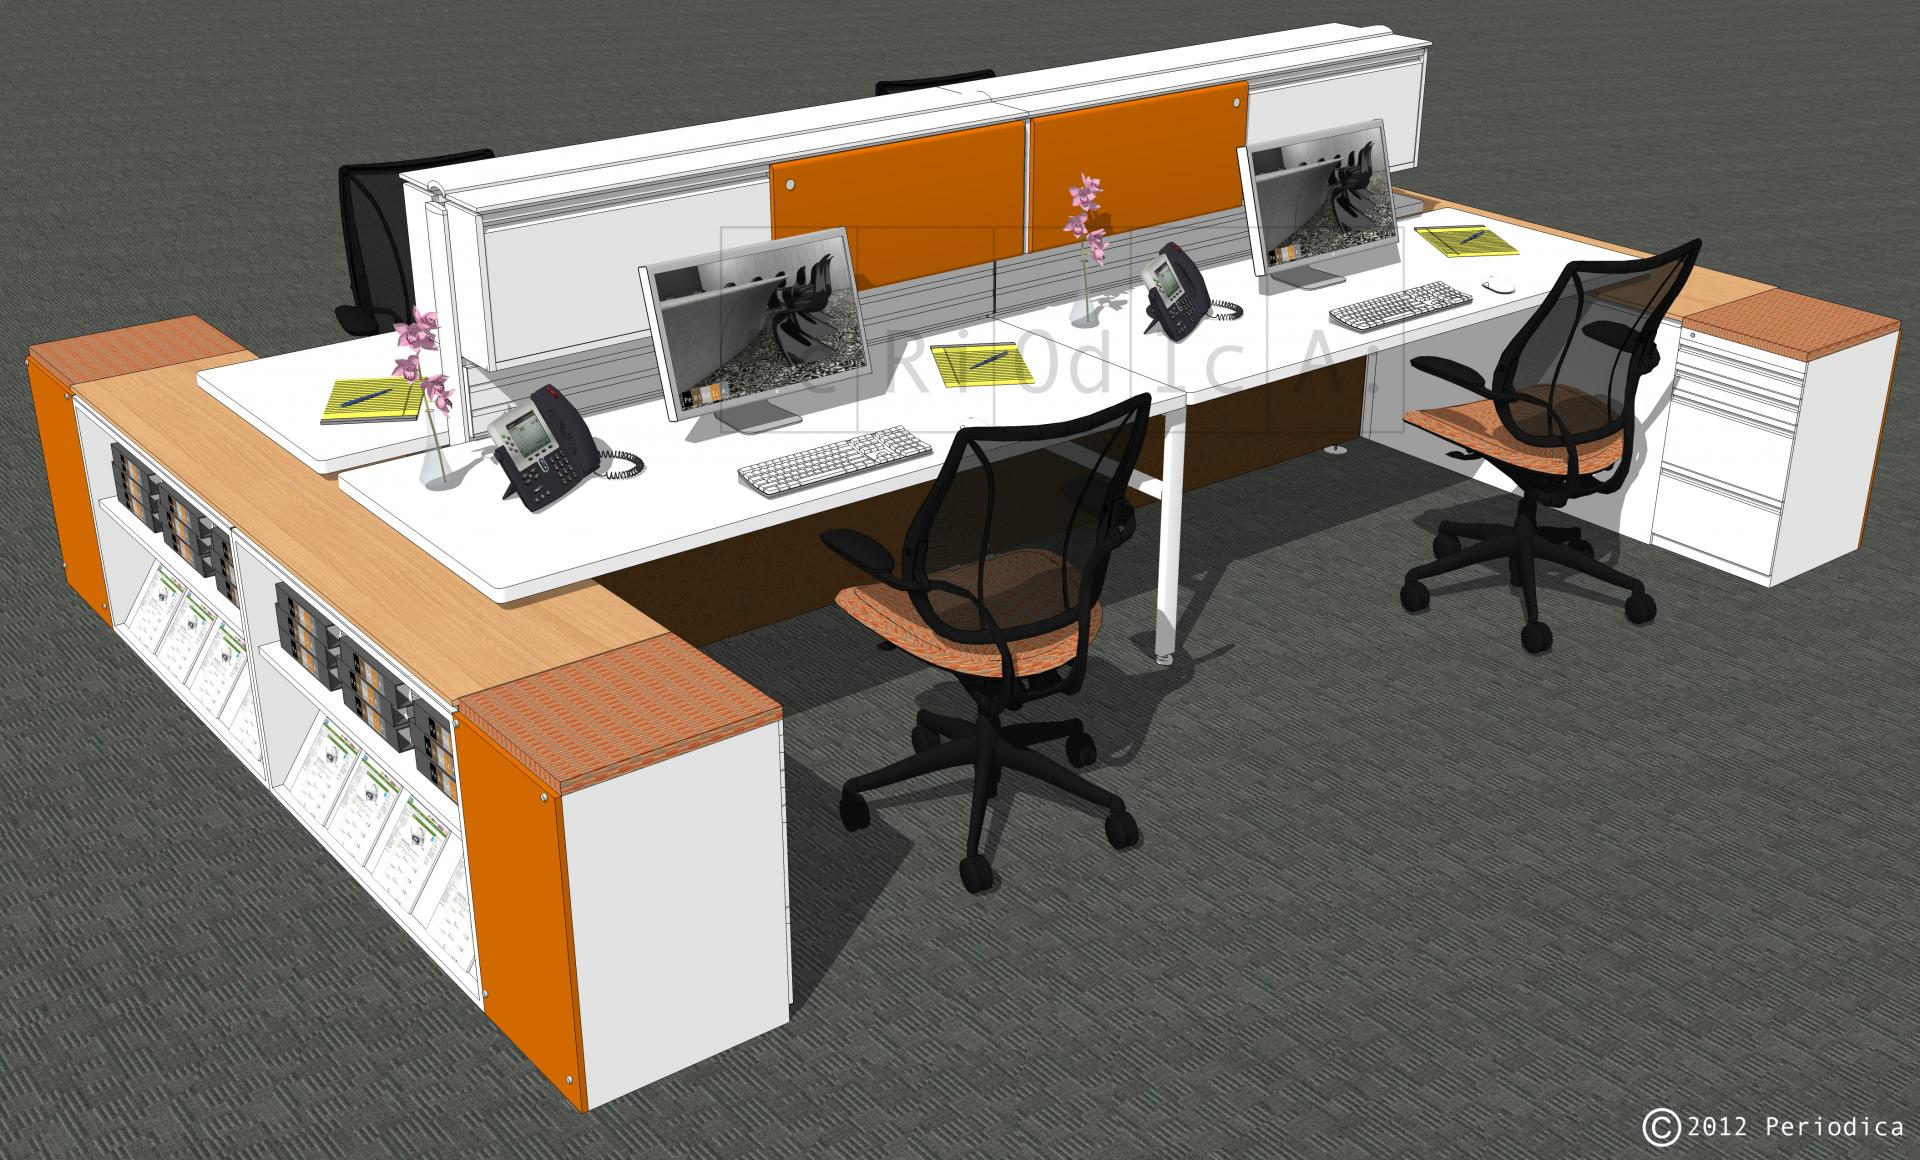 004/ cluster of 4 workstations (Inscape)